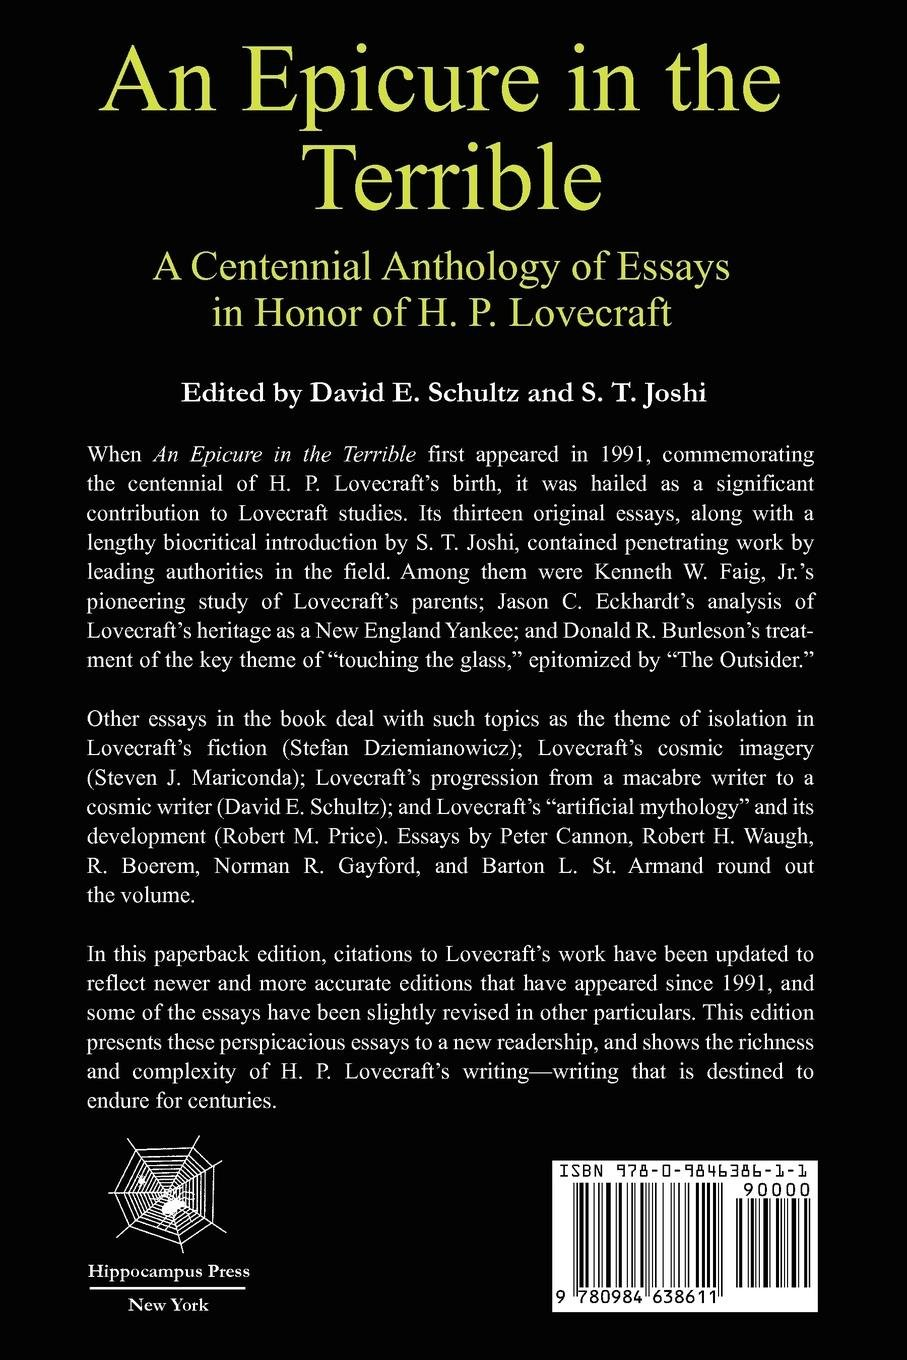 amazon com an epicure in the terrible a centennial anthology of amazon com an epicure in the terrible a centennial anthology of essays in honor of h p lovecraft 9780984638611 david e schultz s t joshi books